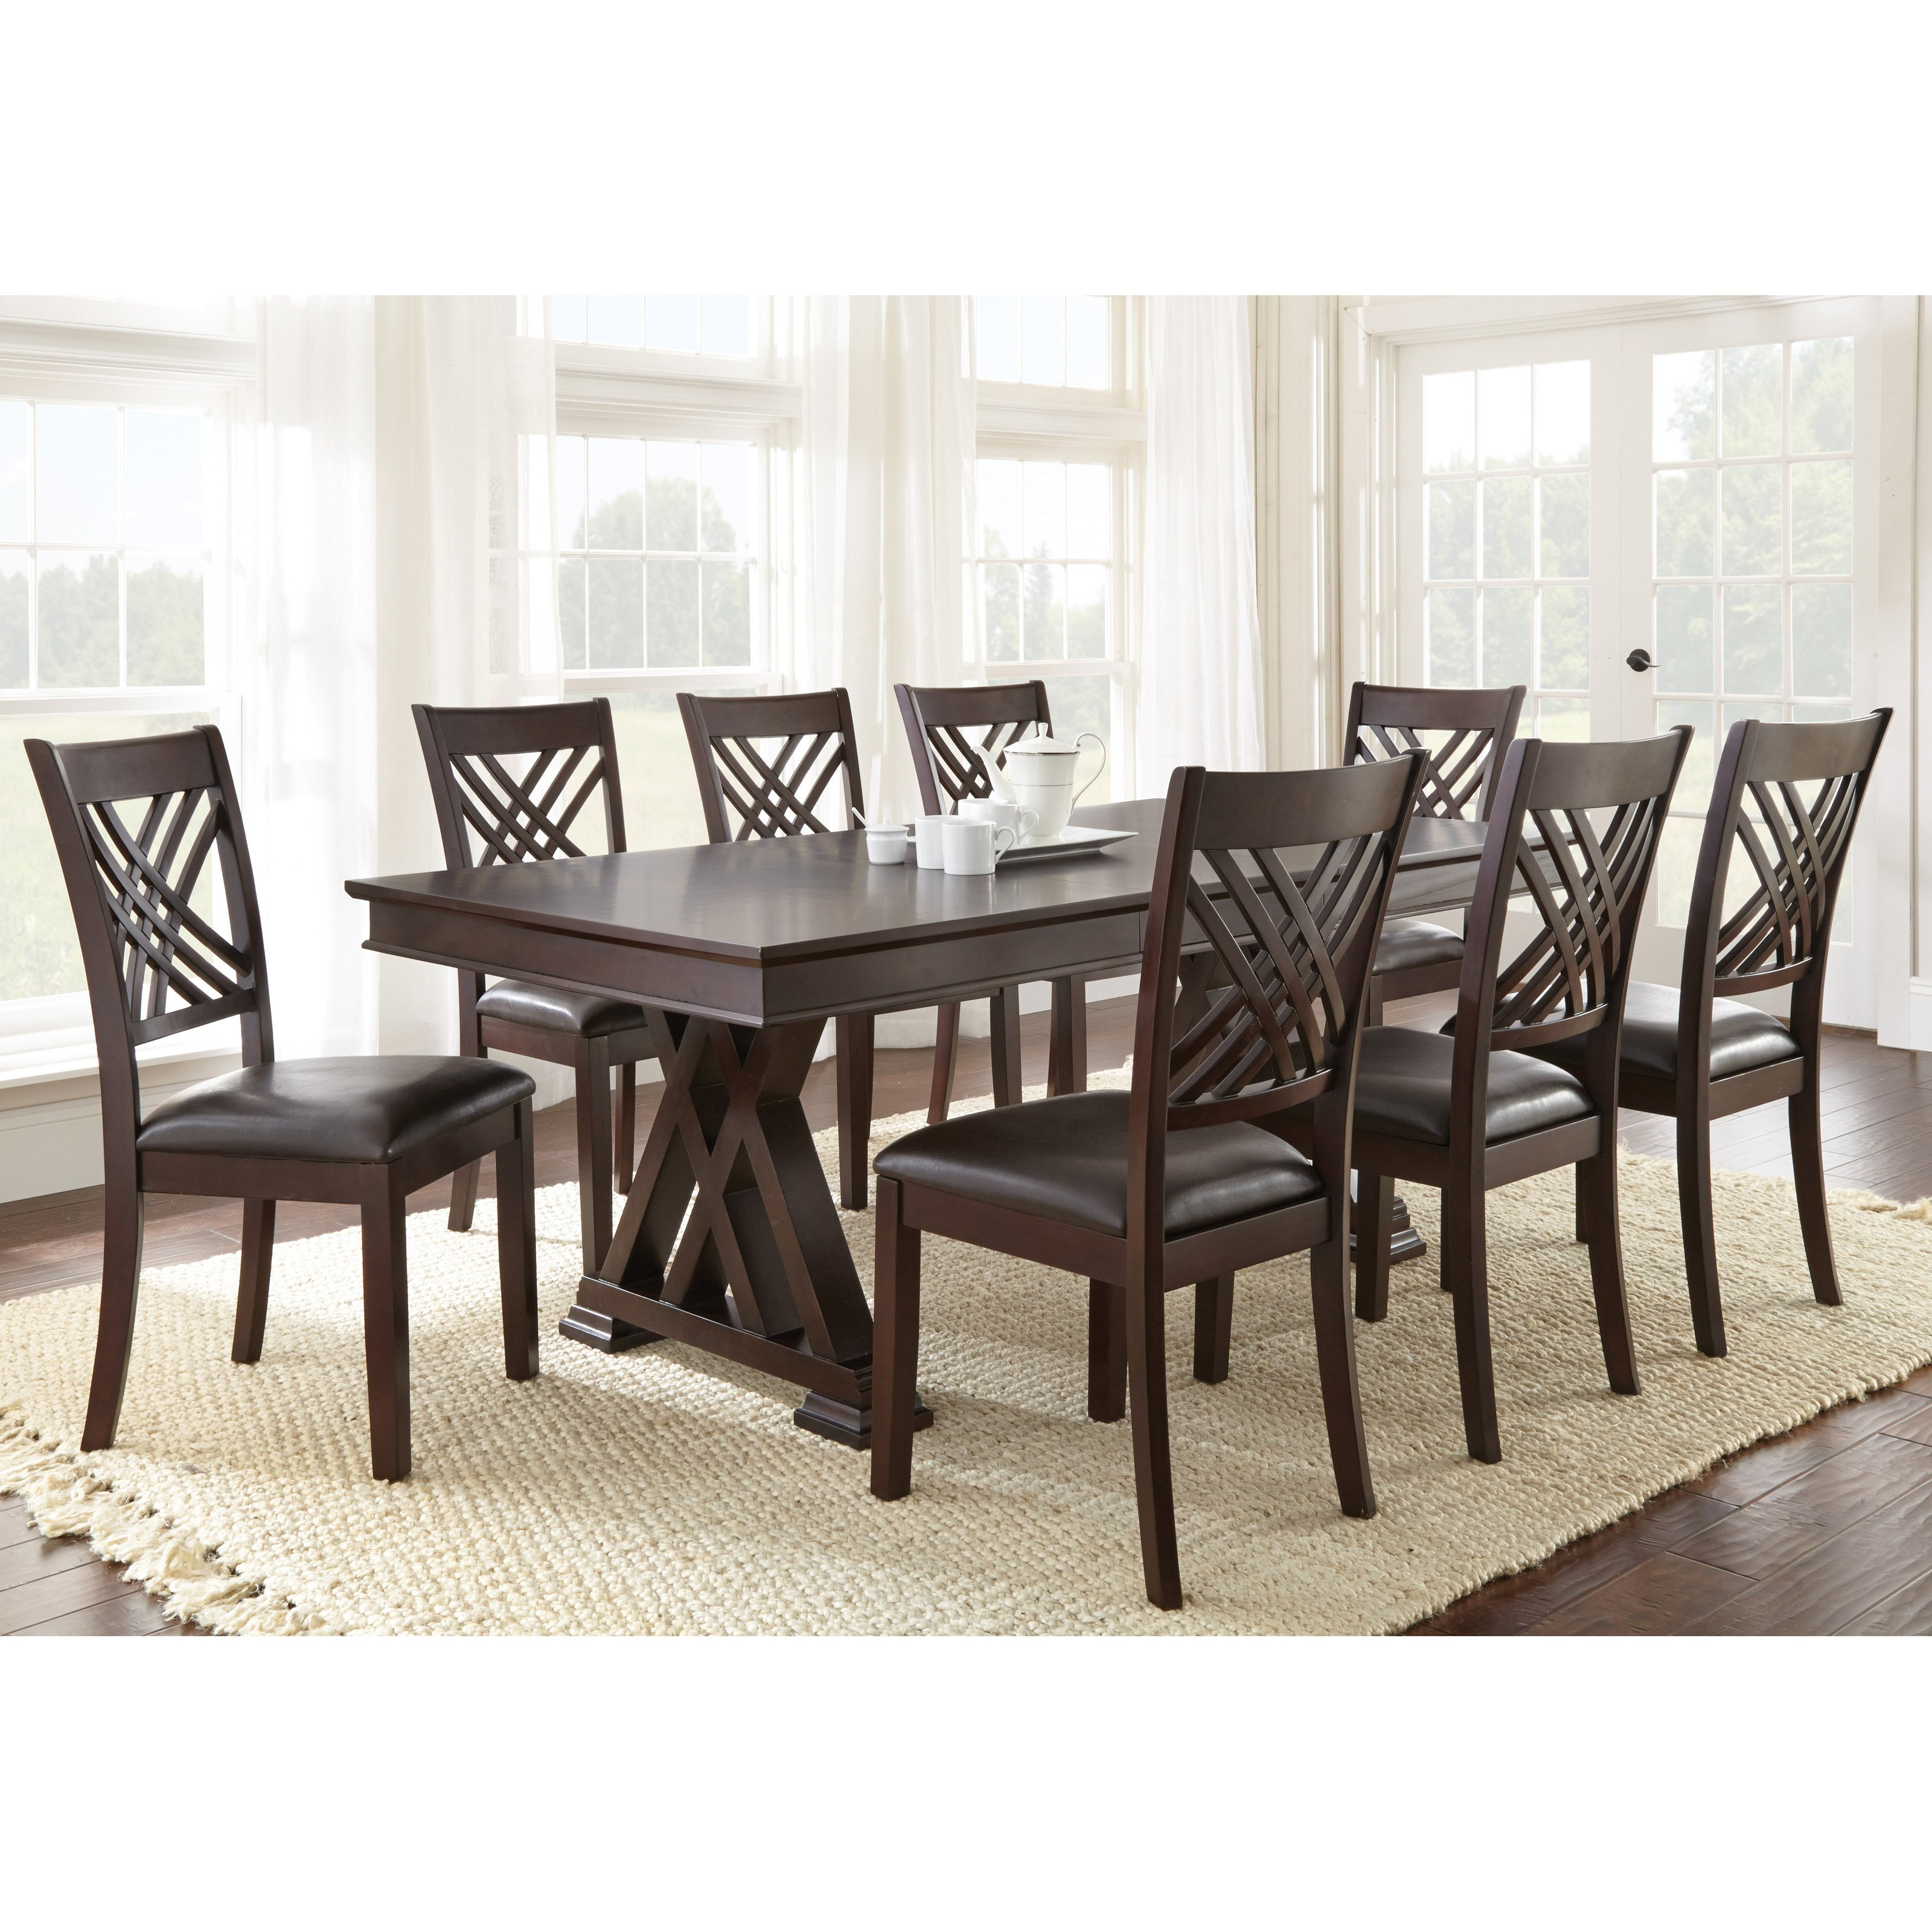 Best ideas about Dining Table Sets . Save or Pin Steve Silver 9 Piece Adrian Dining Table Set Dining Now.